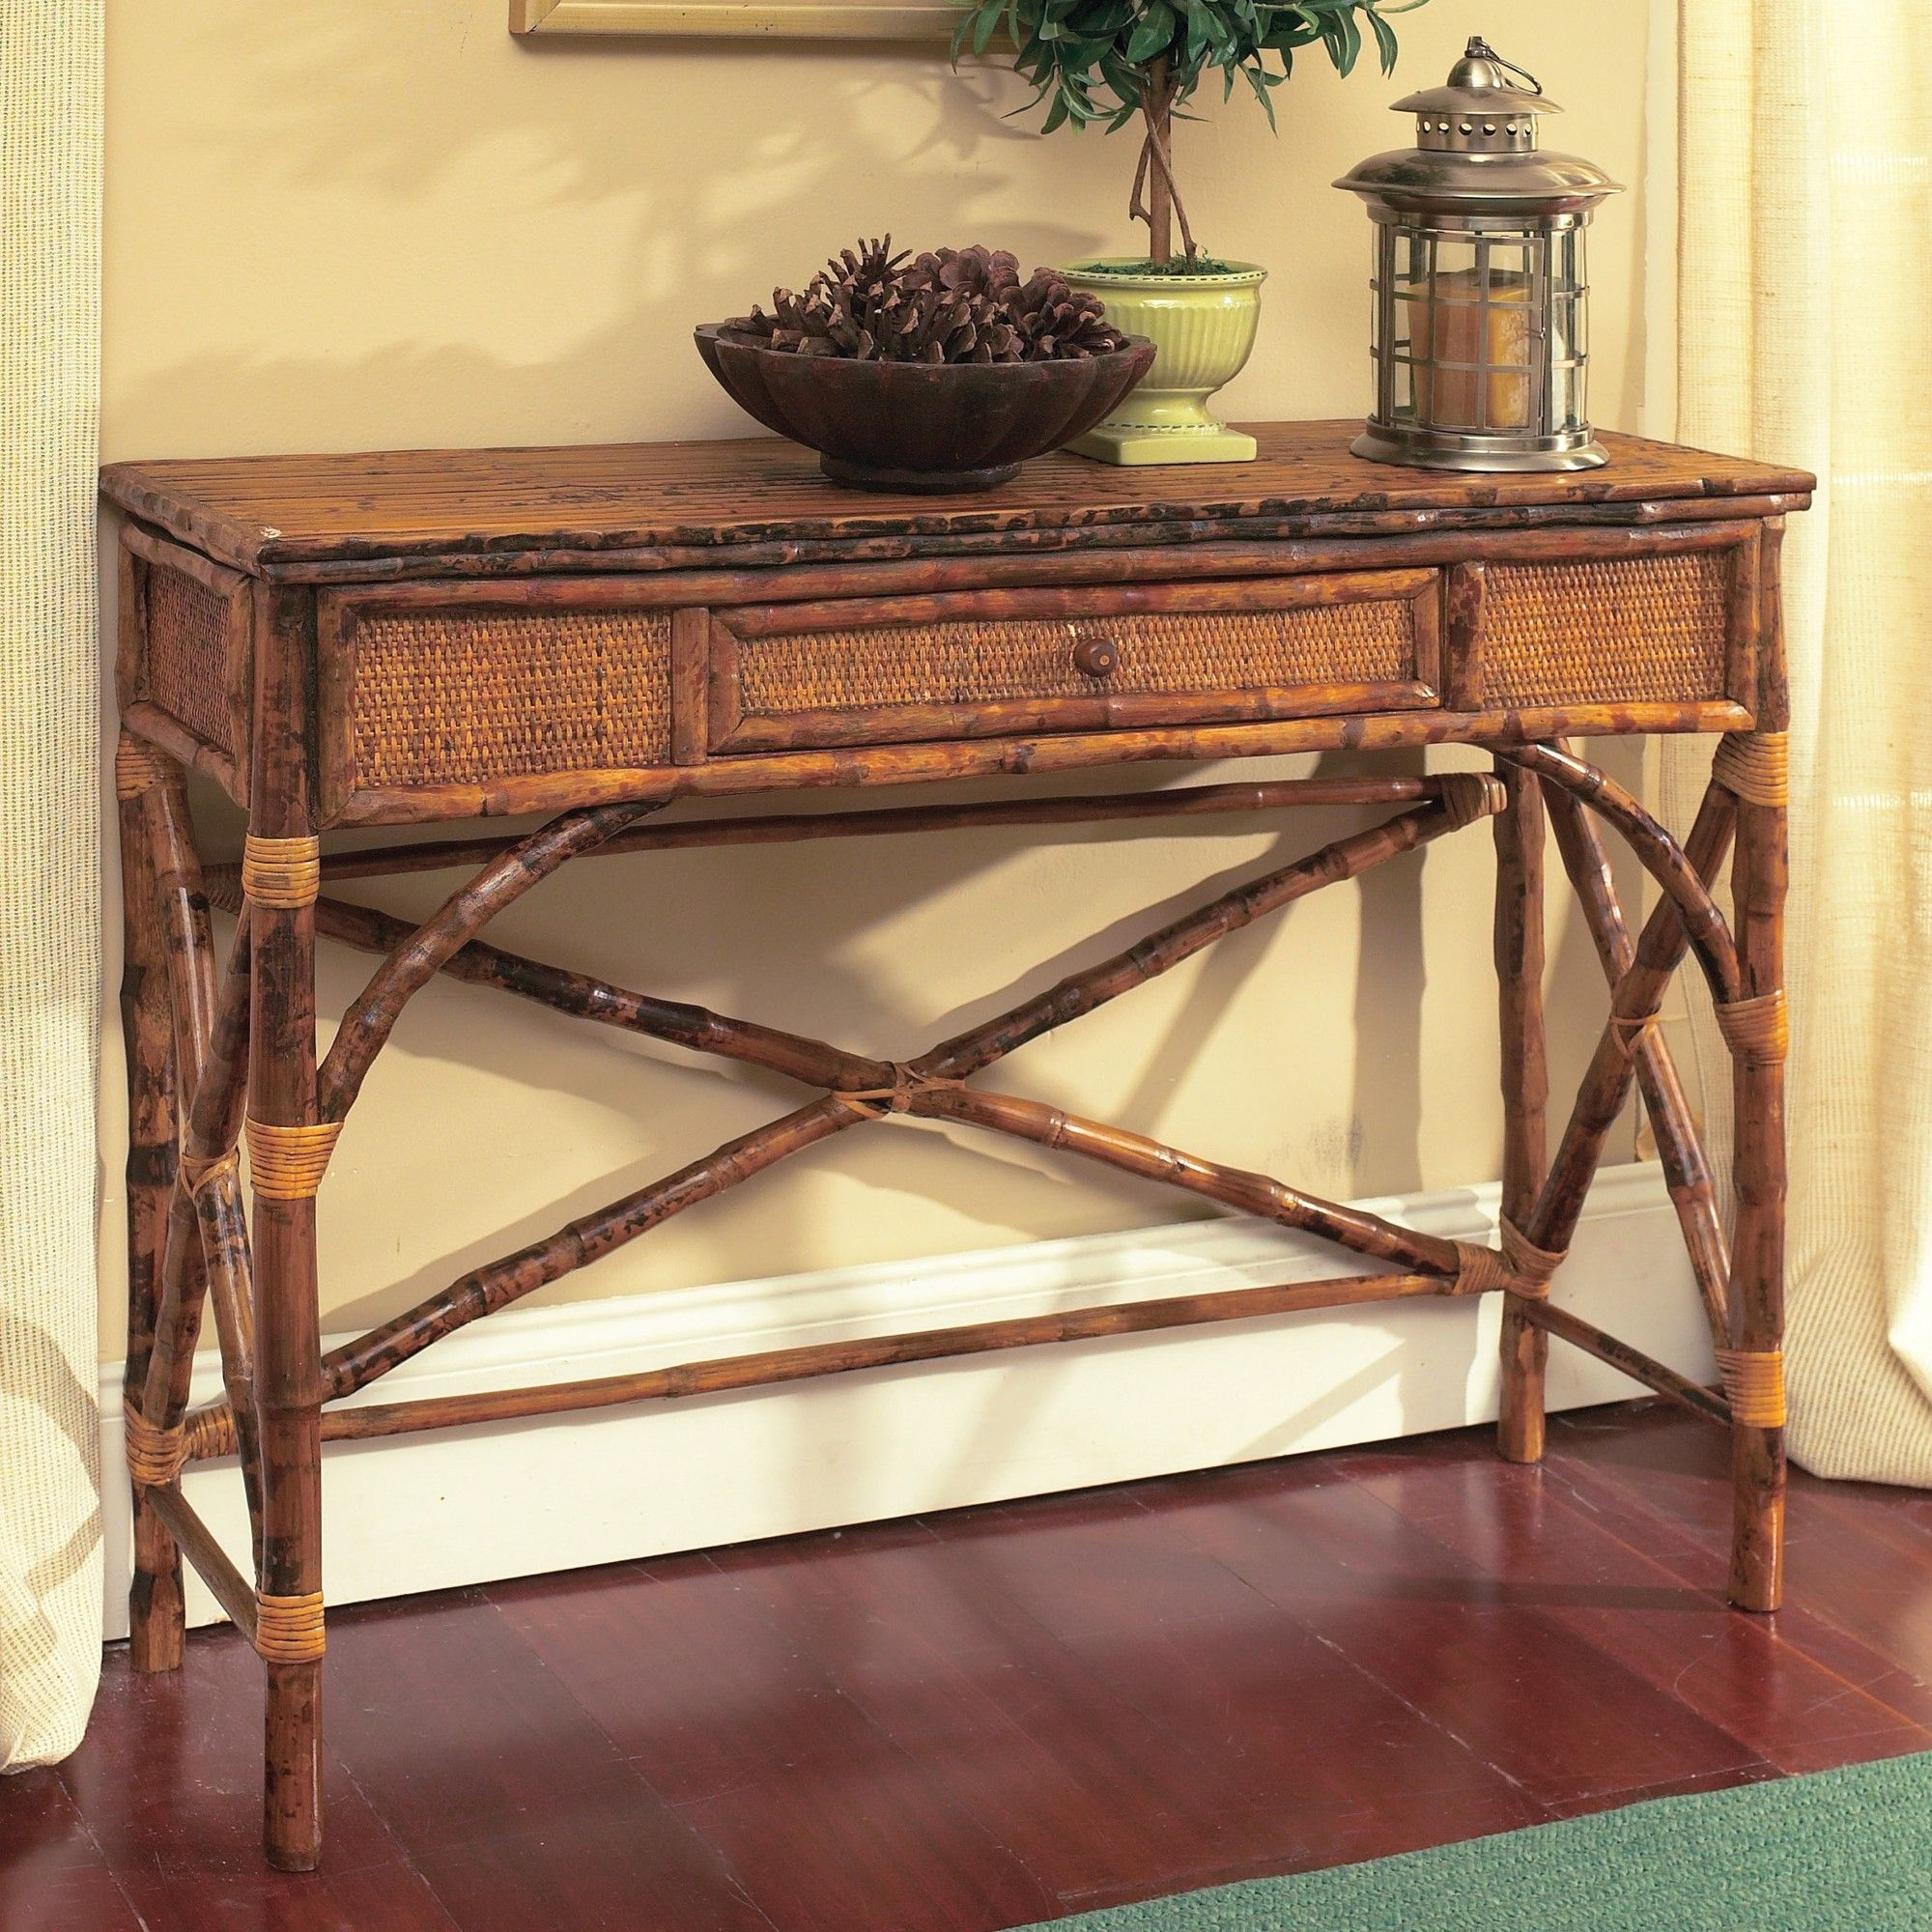 coastal chic console table products pinterest products rh za pinterest com